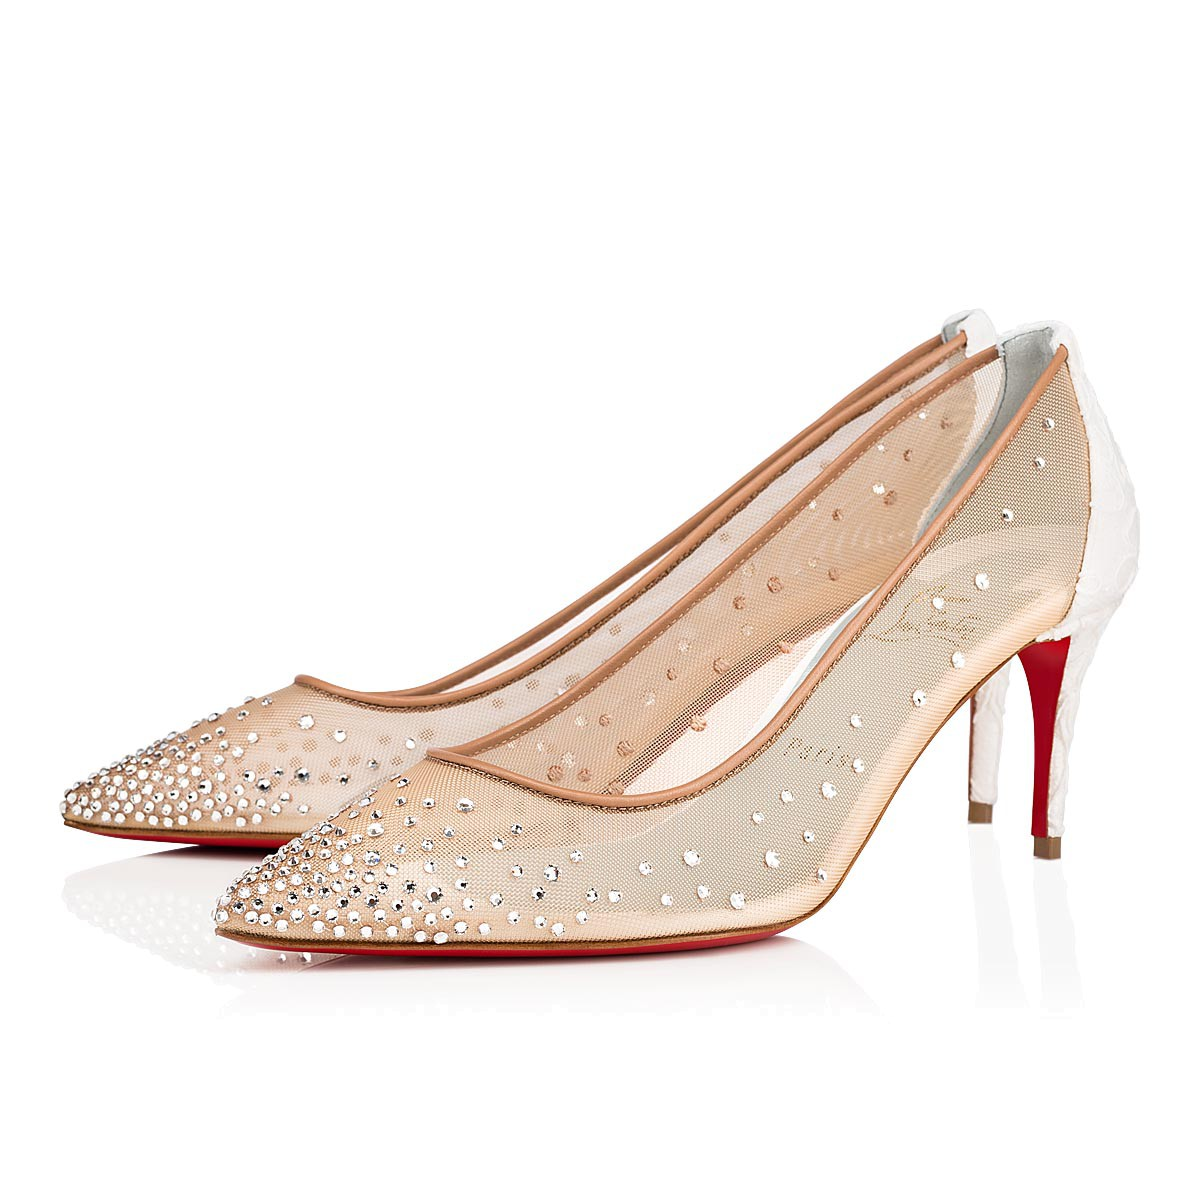 Souliers - Follies Strass Dentelle - Christian Louboutin